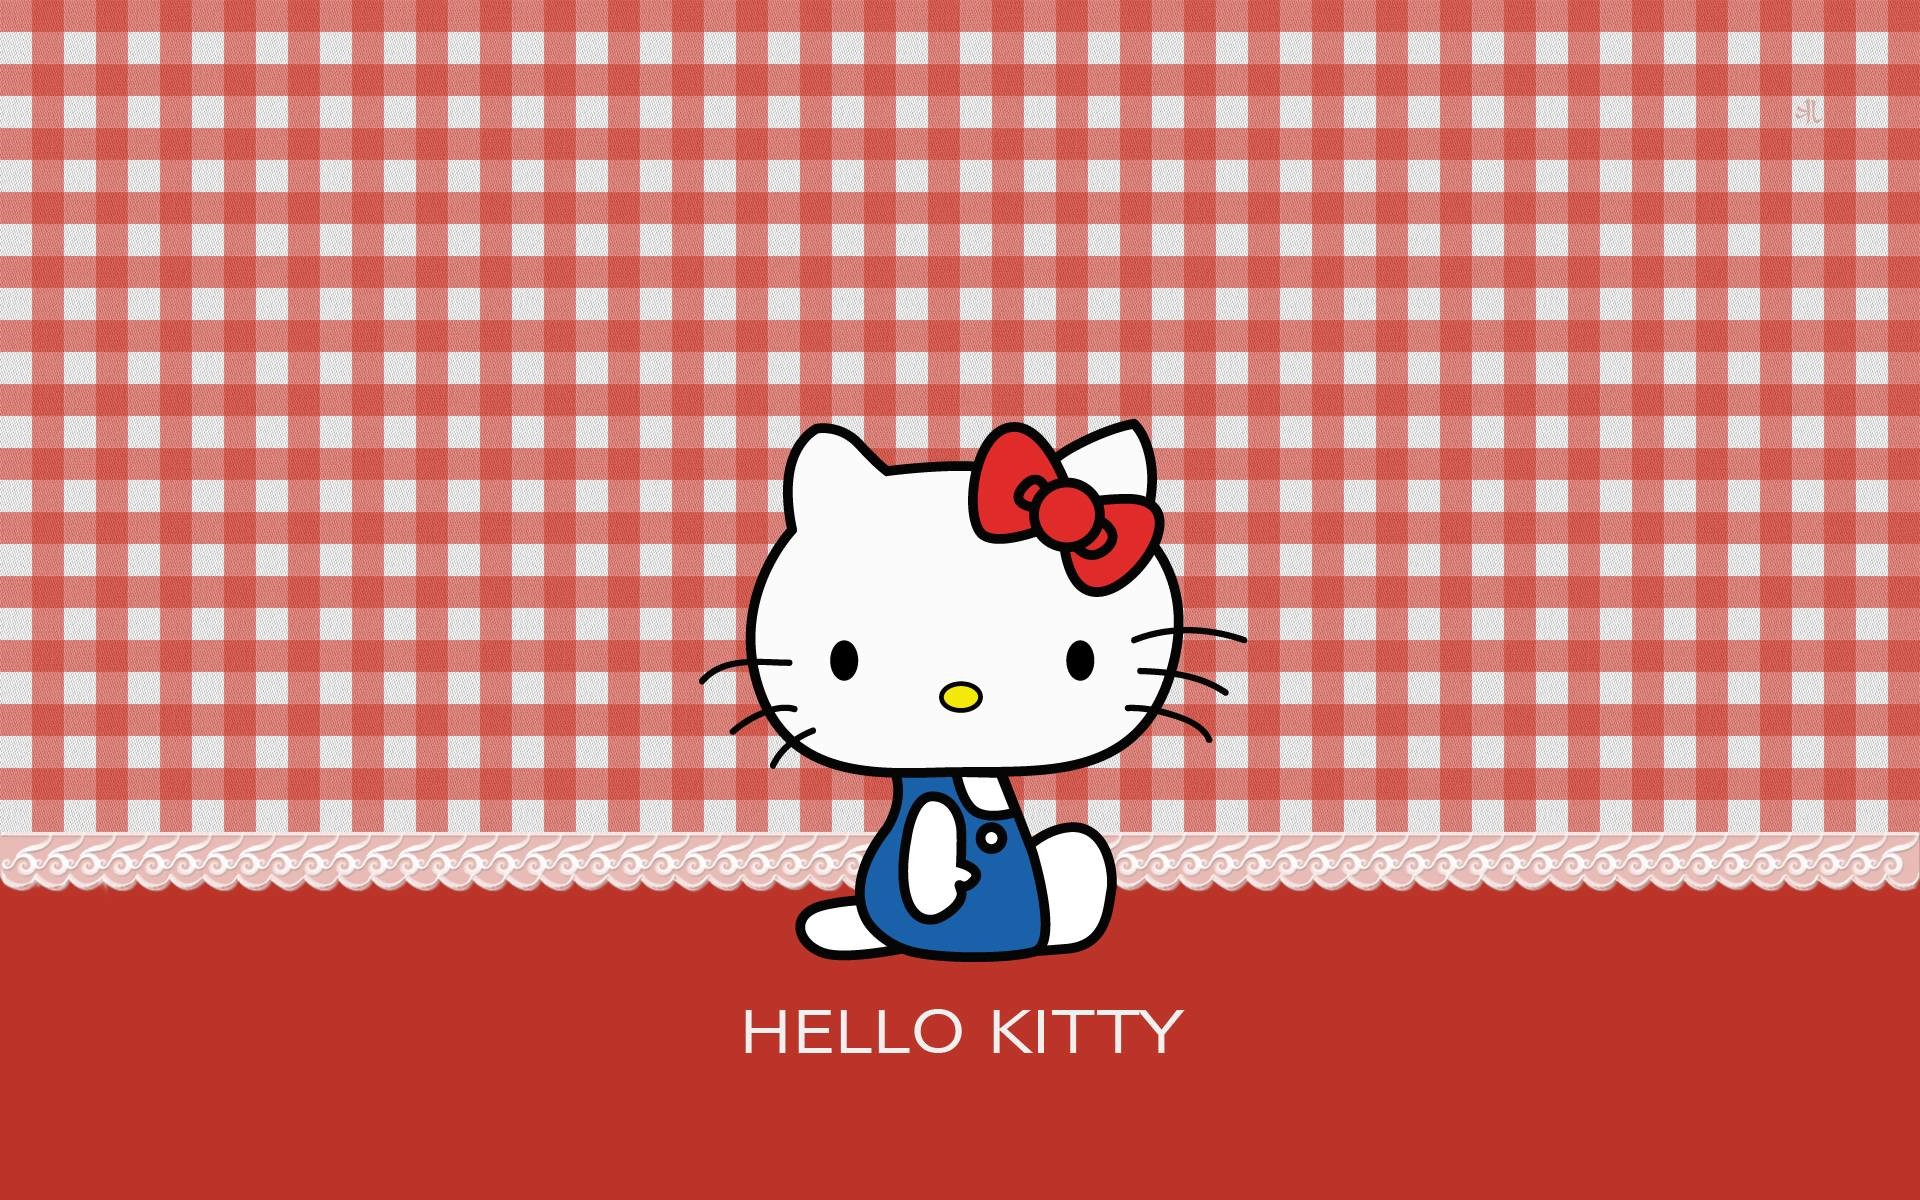 1920x1200 Wallpapers For > Black And Red Hello Kitty Background